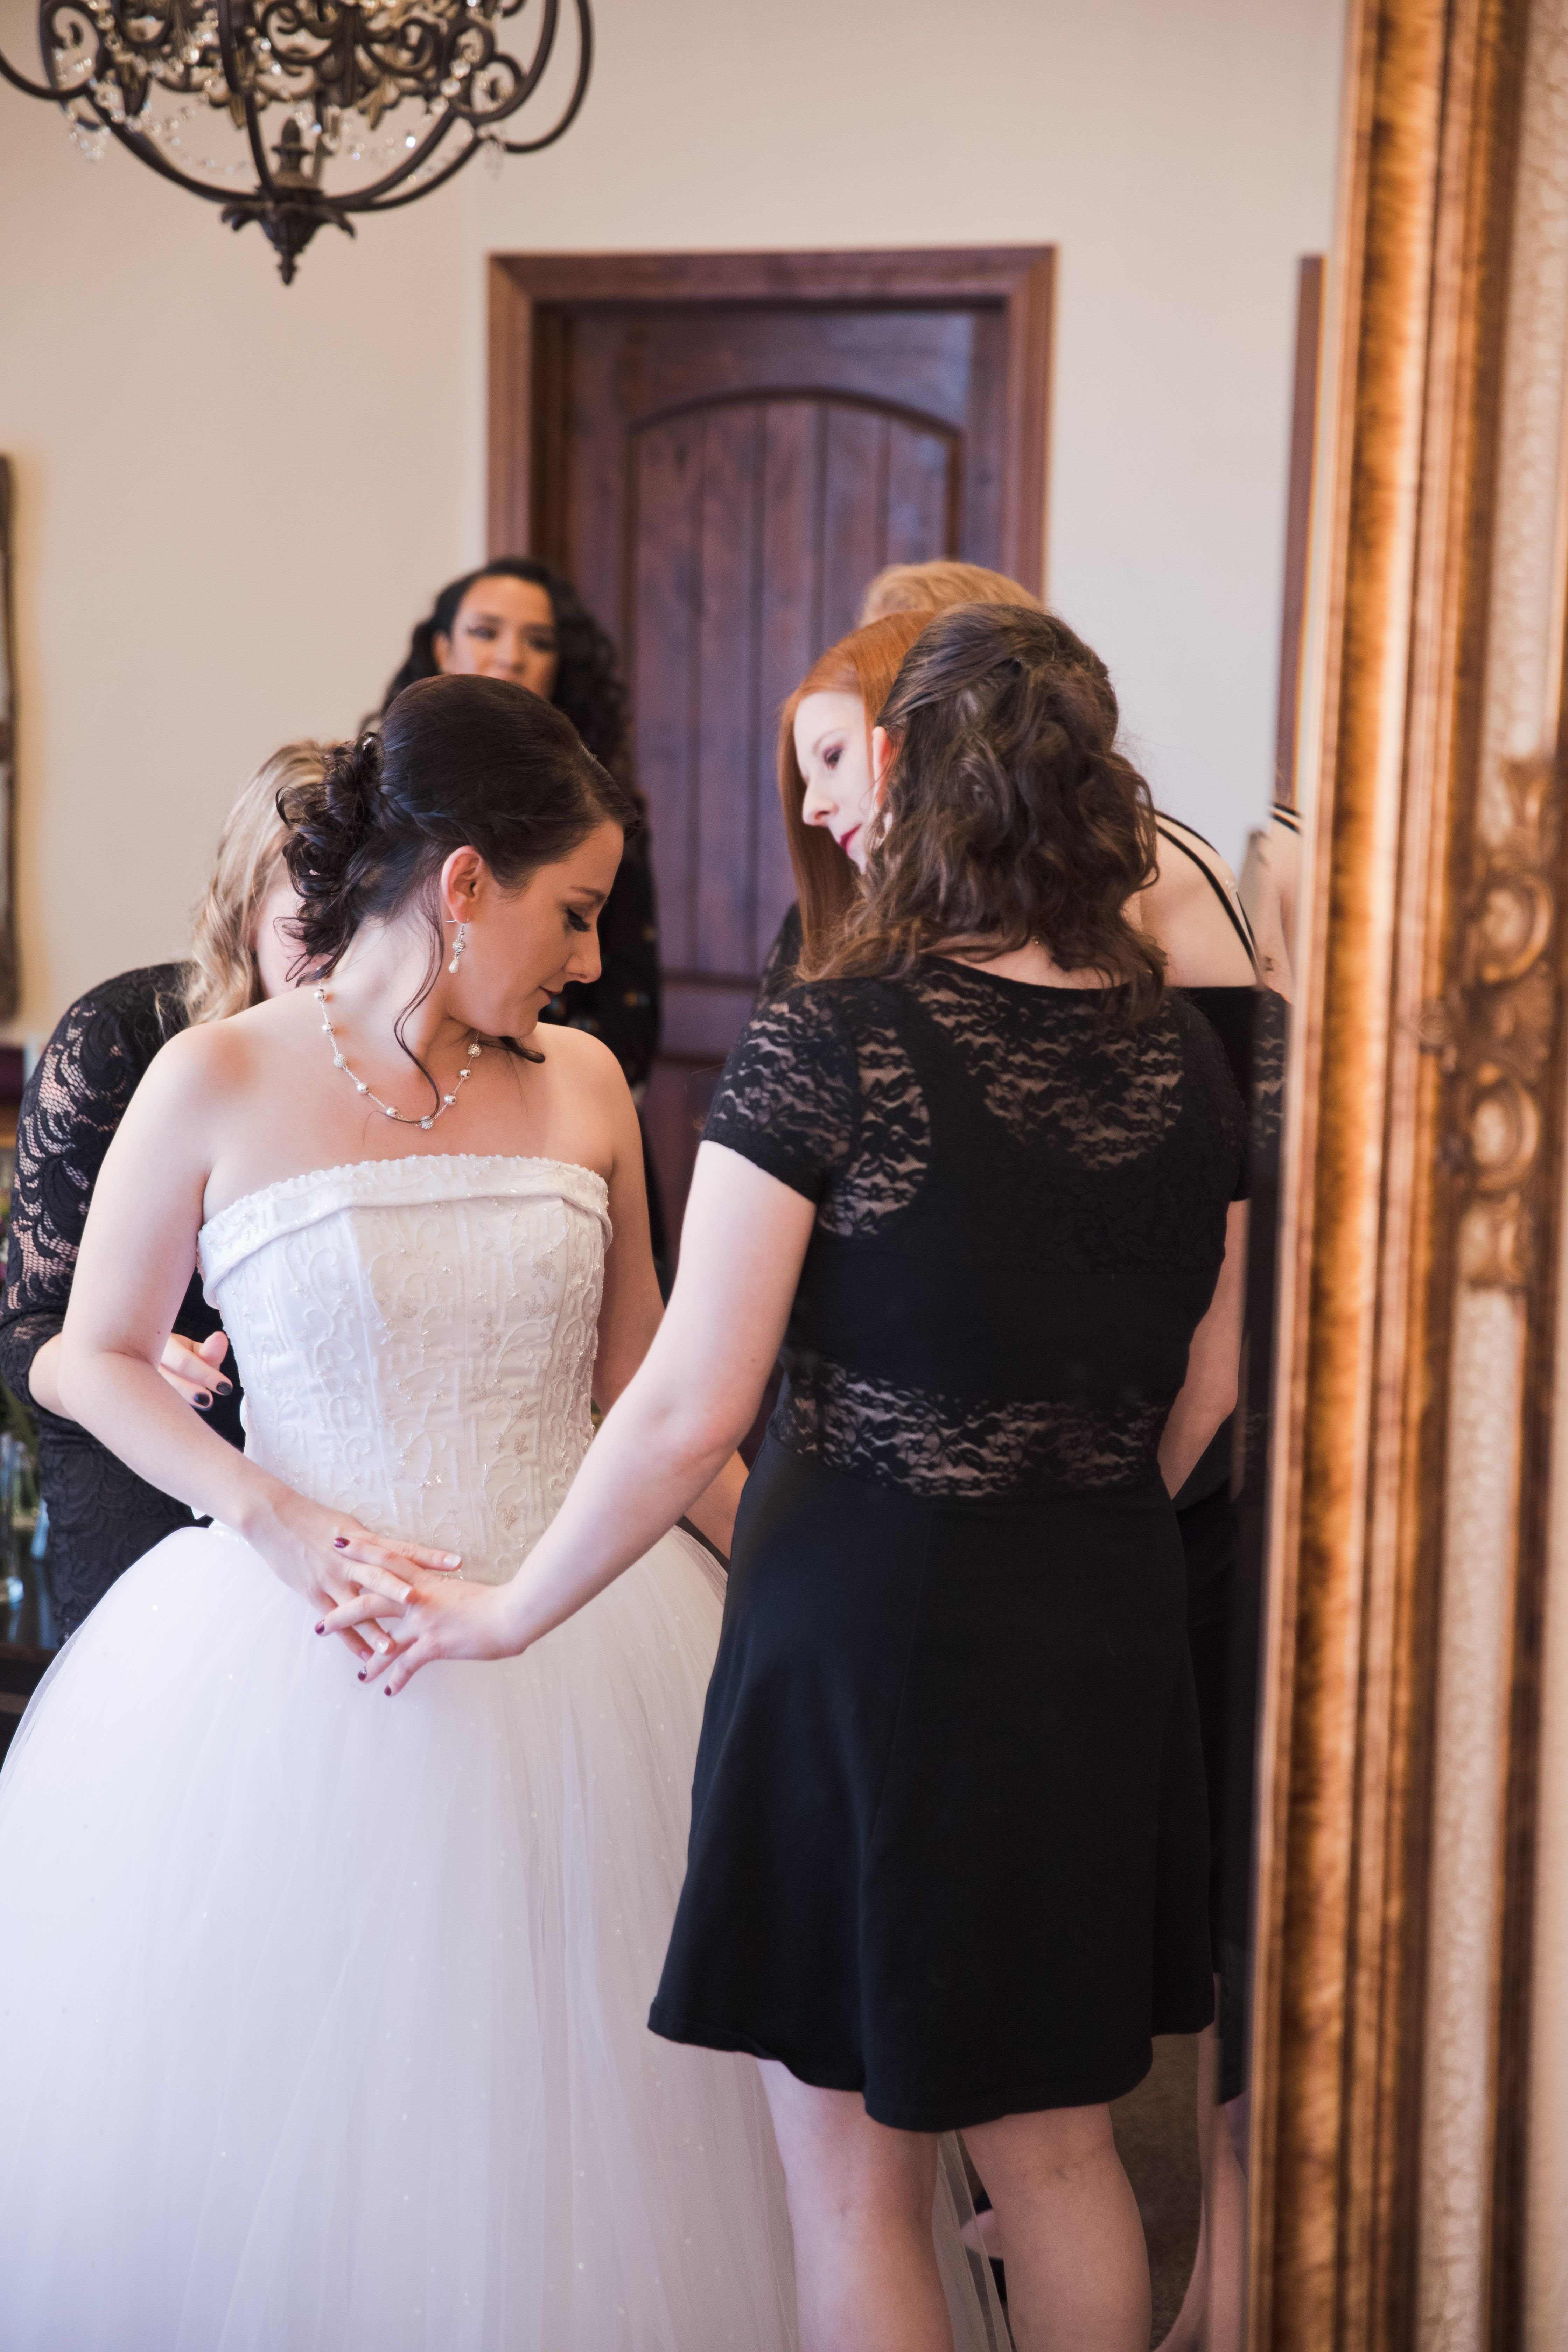 Bridesmaids helping this pretty bride get in her wedding dress ...